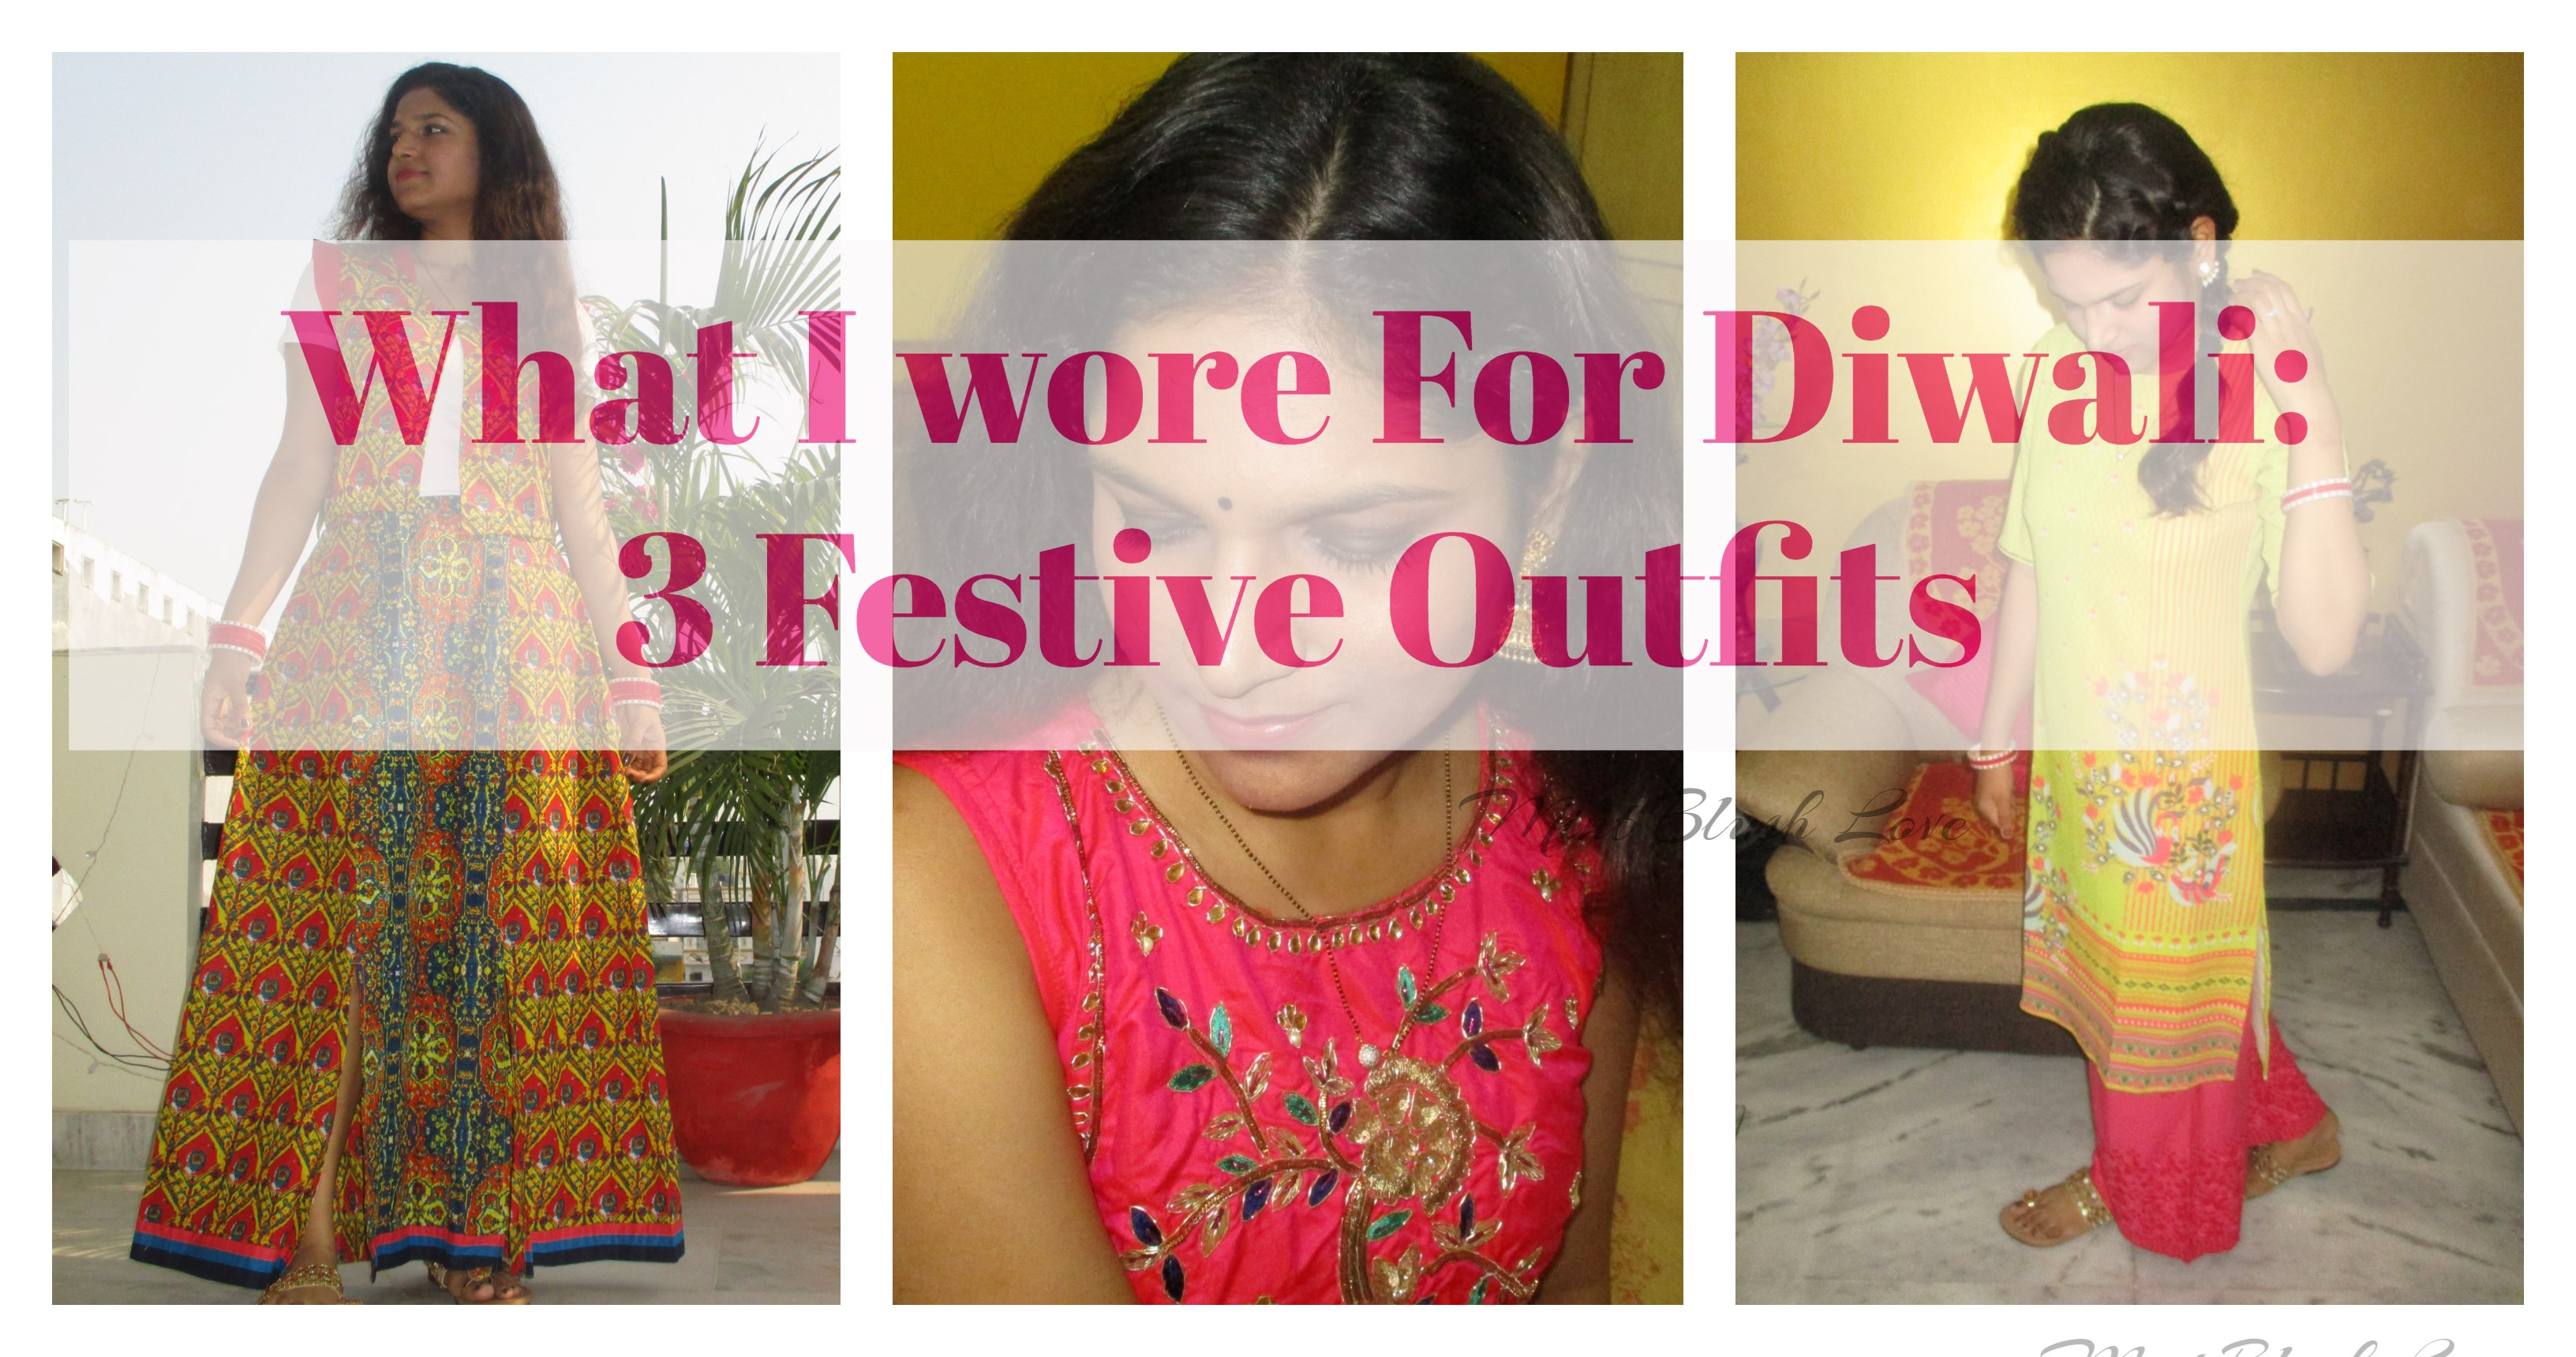 Diwali Outfits: Festive outfit ideas